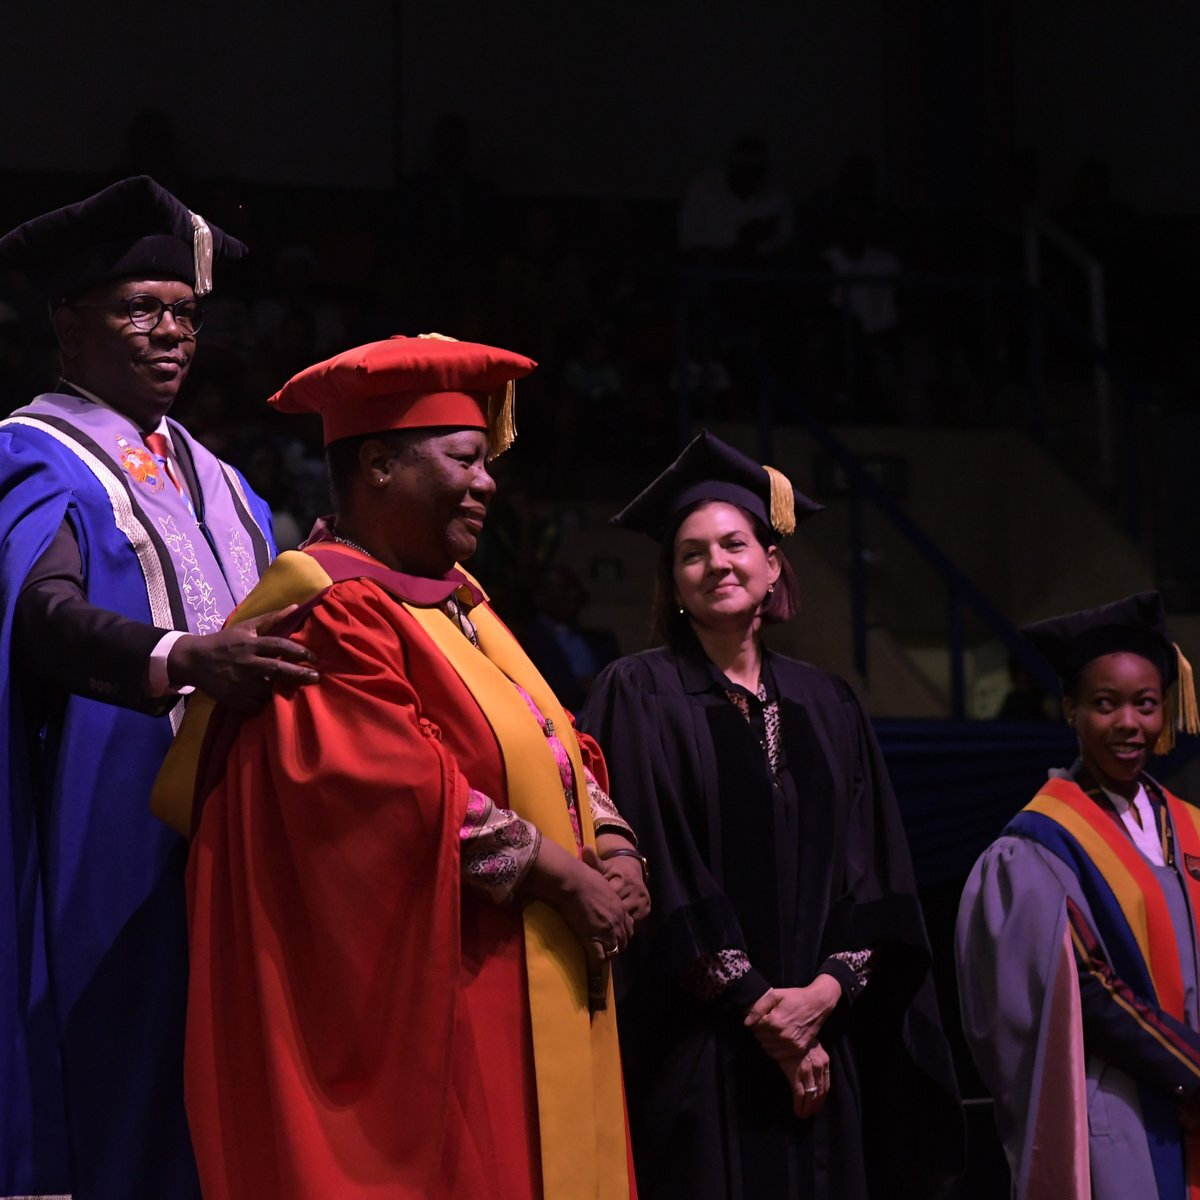 SA's Minister of Higher Education and Training graduates with PHD